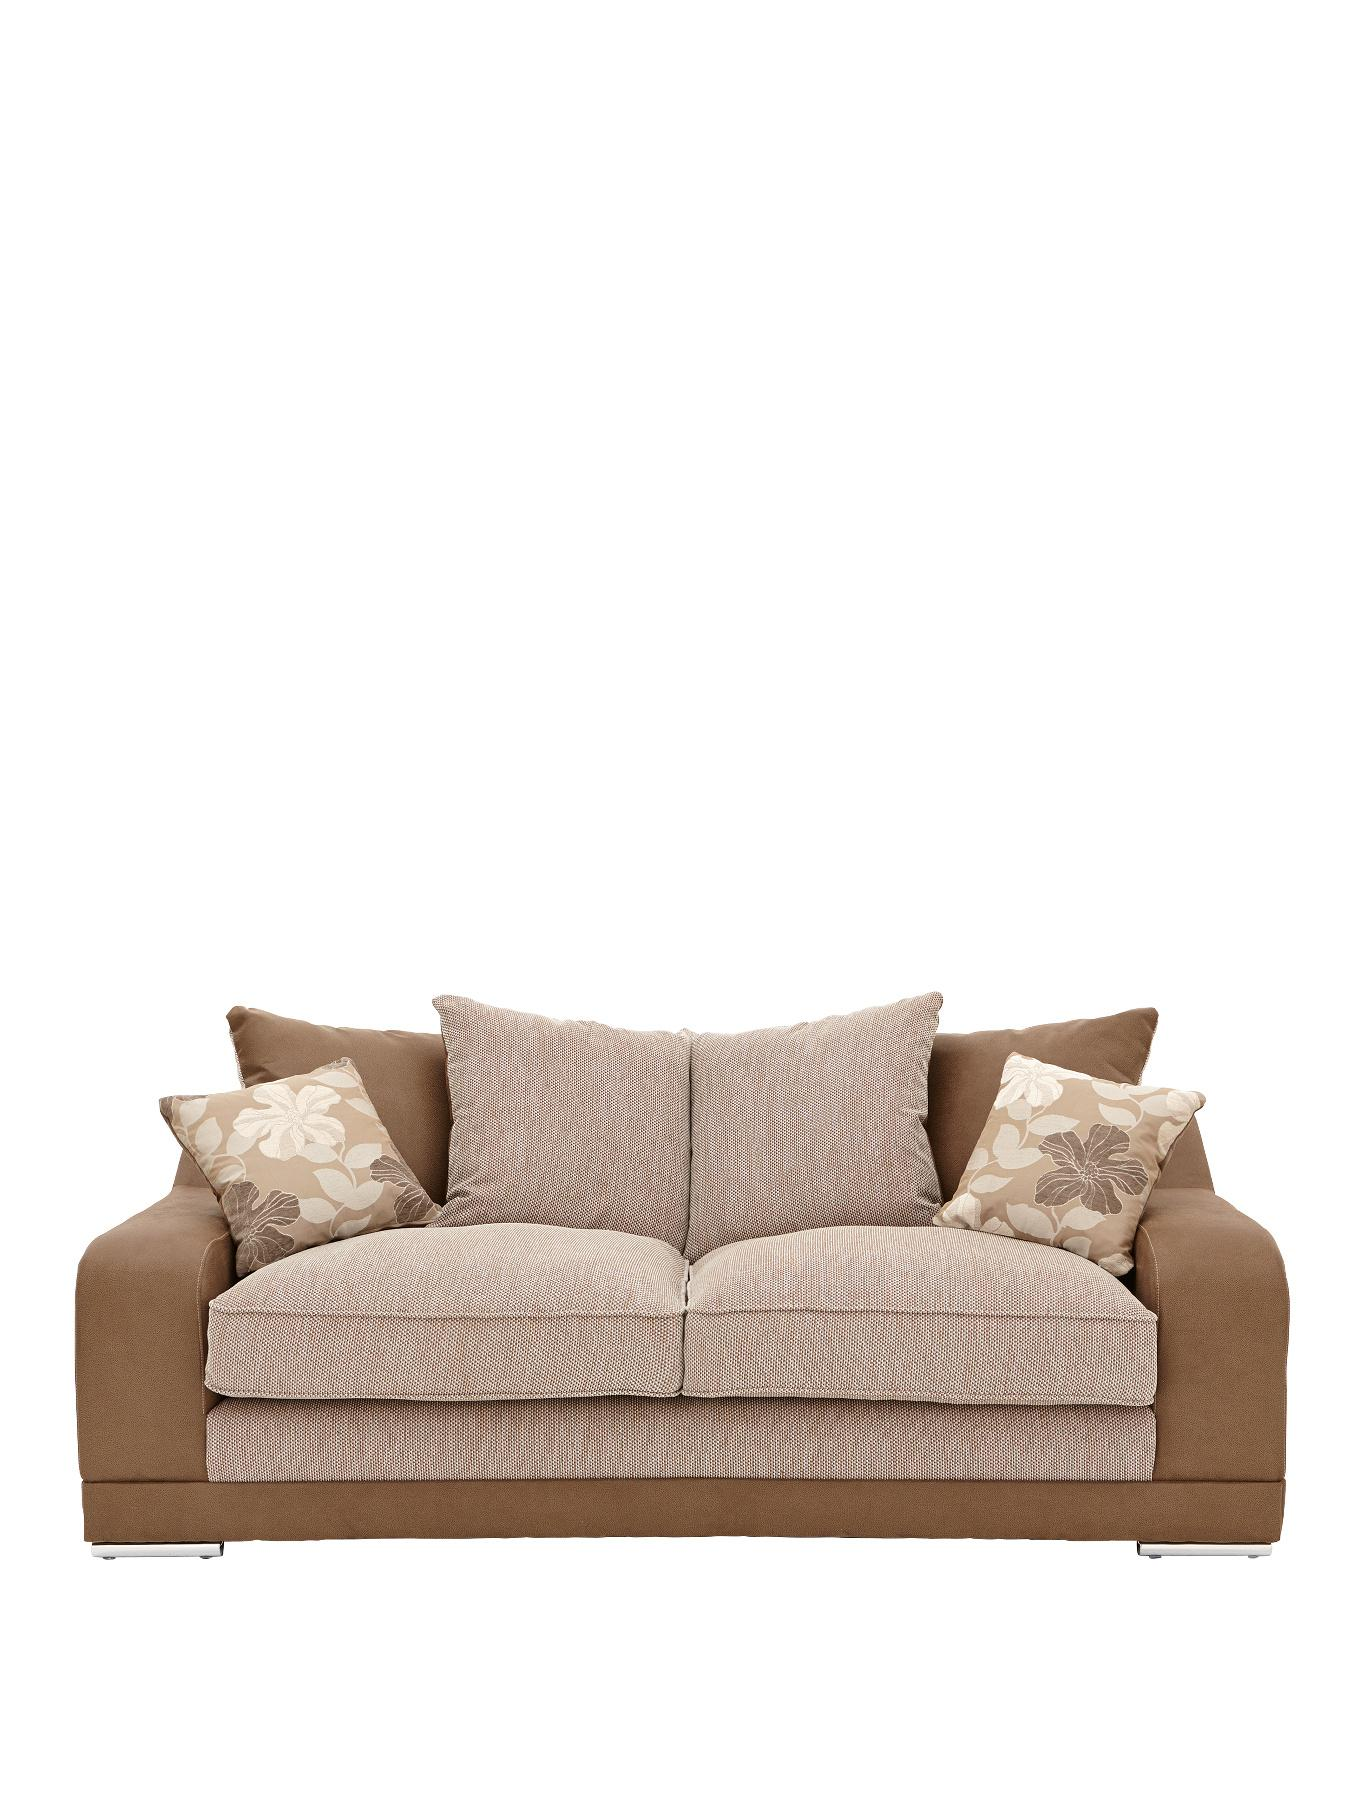 Ravenna 3-Seater Sofa, Grey